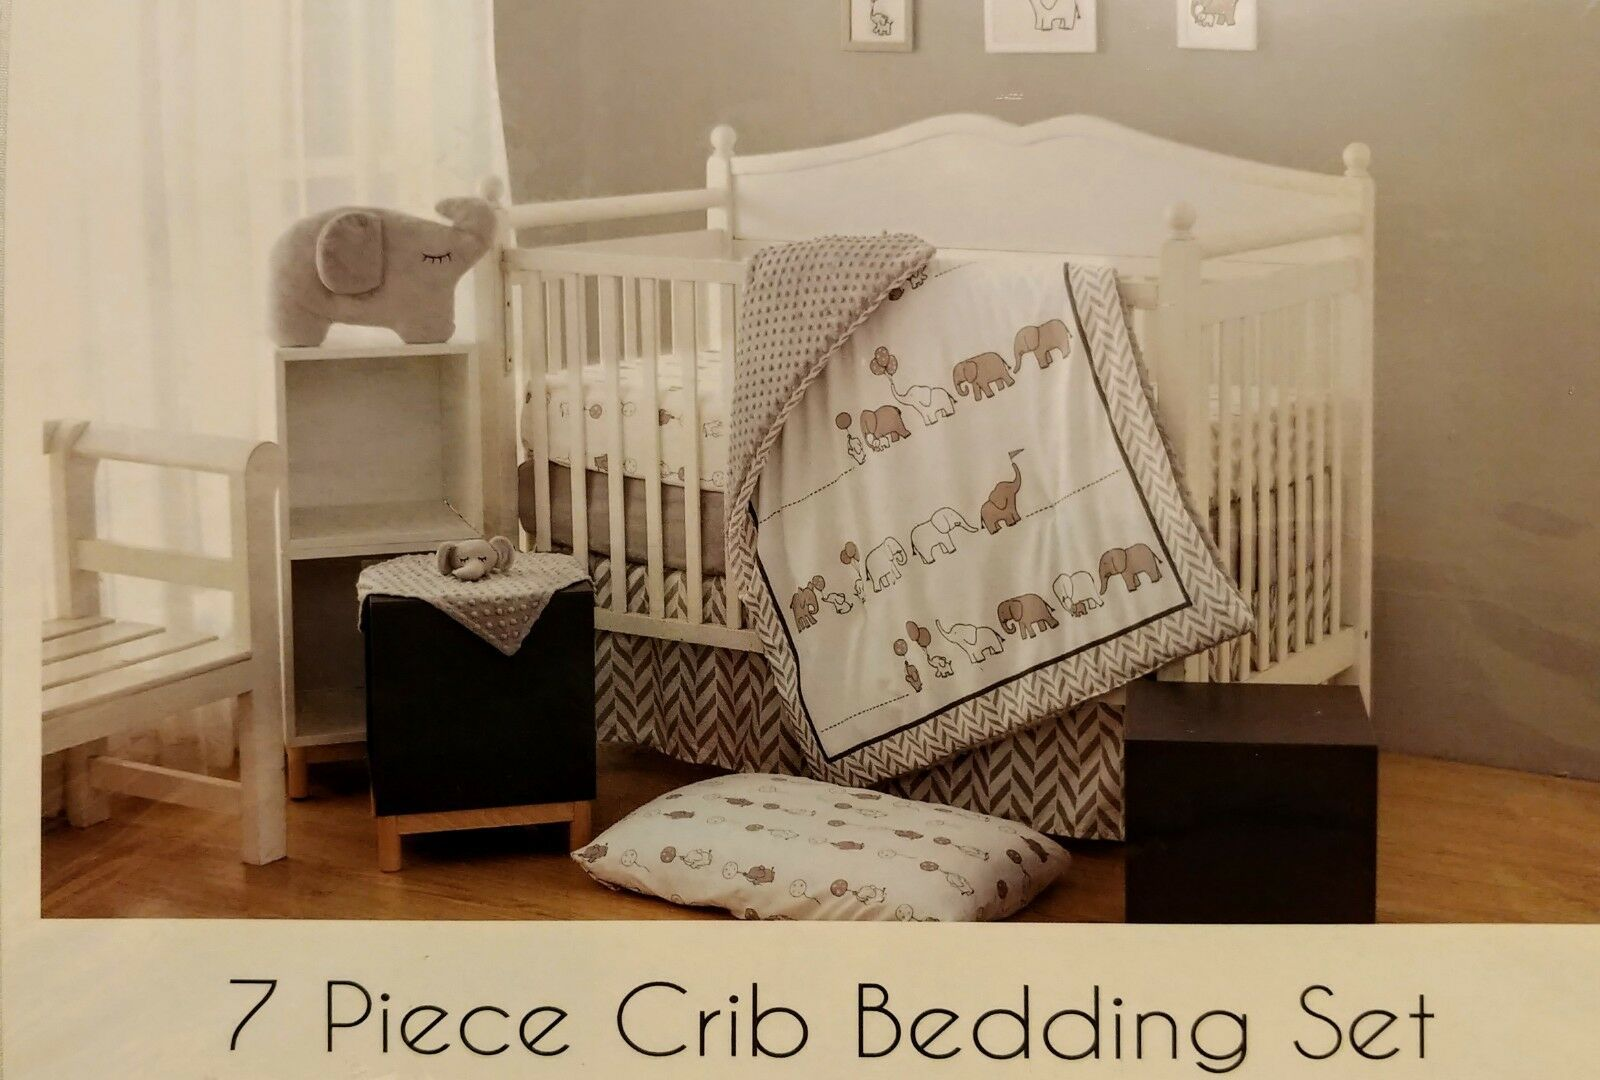 4 Piece Crib Duvet Quilt Set Baby Bedding With Cover Fits Cradle Ecru